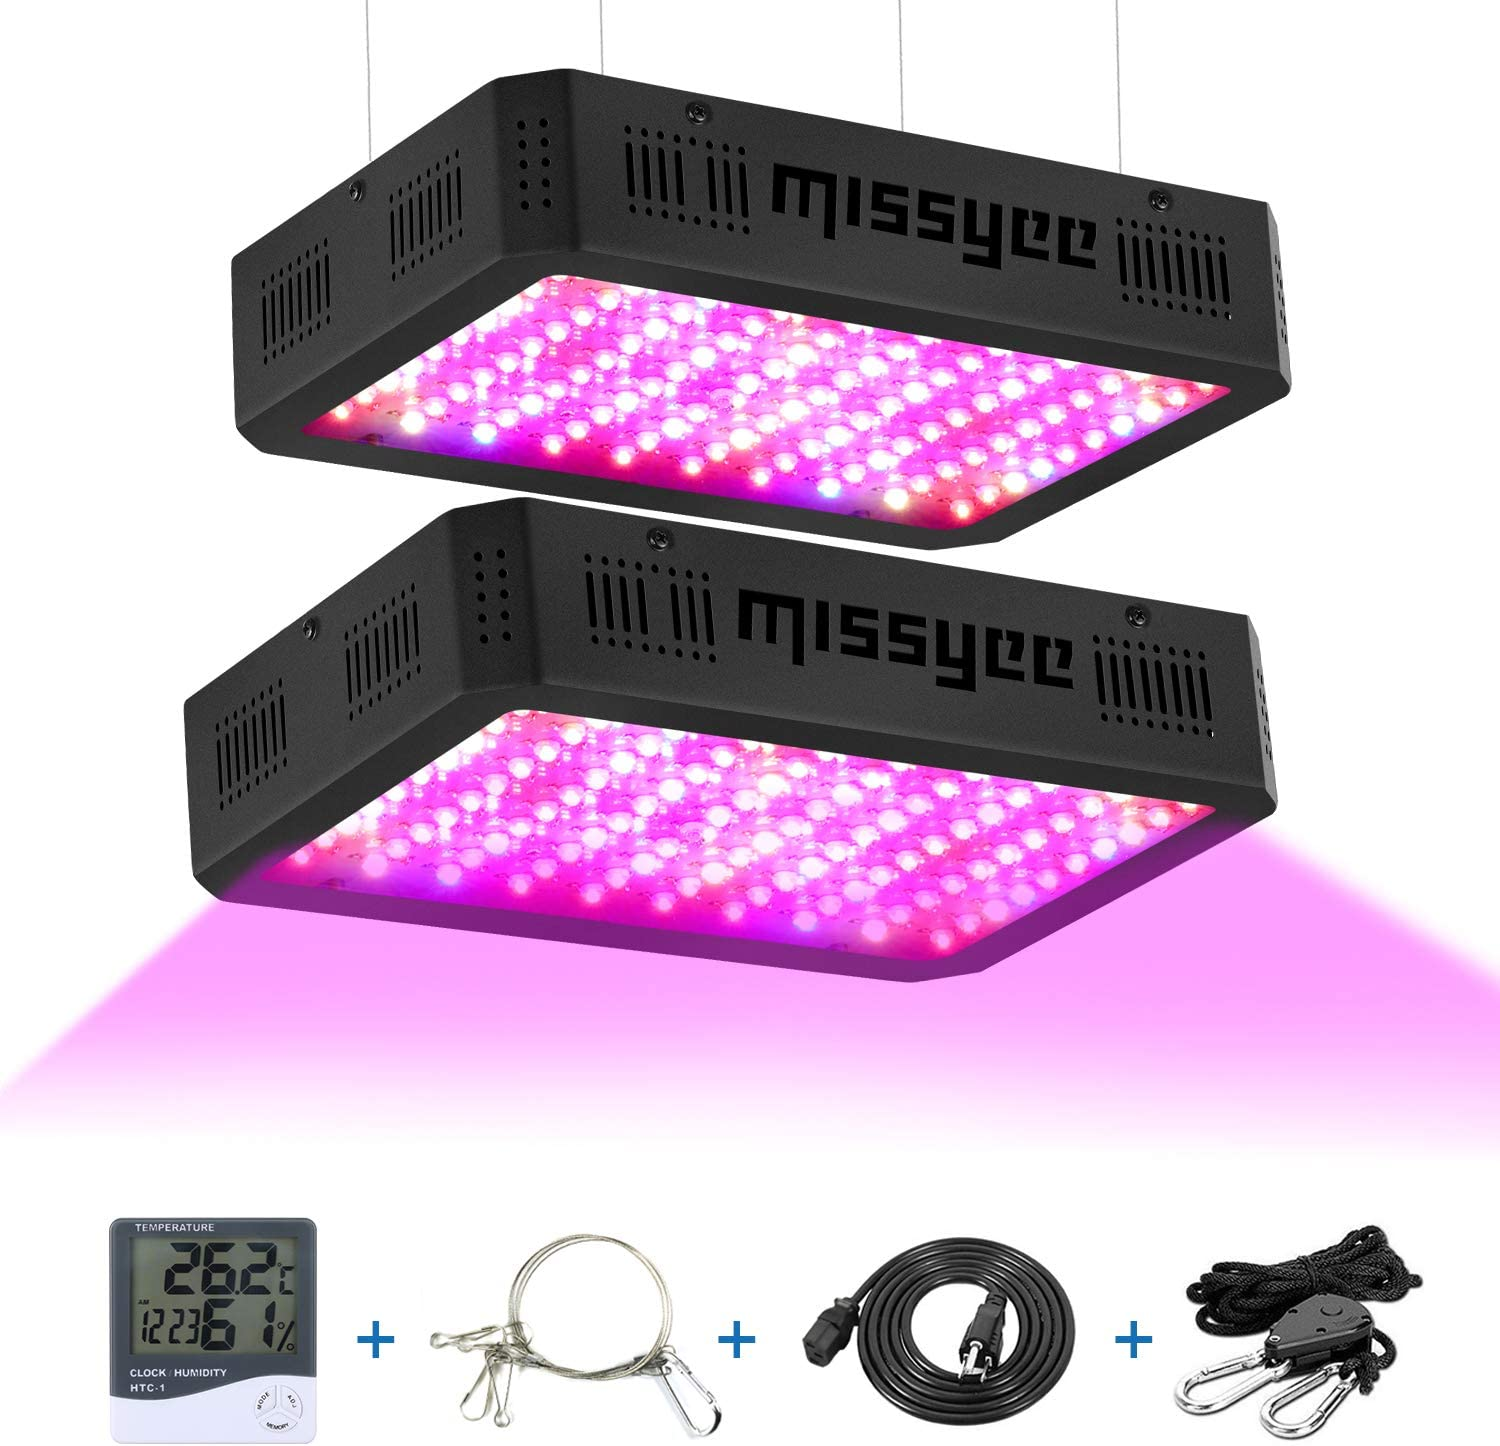 1000W LED Grow Light, Missyee 2-Pack Full Spectrum Plant Light with UV IR, Veg and Bloom Dual Switch for Greenhouse Indoor Plants Veg Flower, Thermometer Humidity Monitor Adjustable Rope, Black